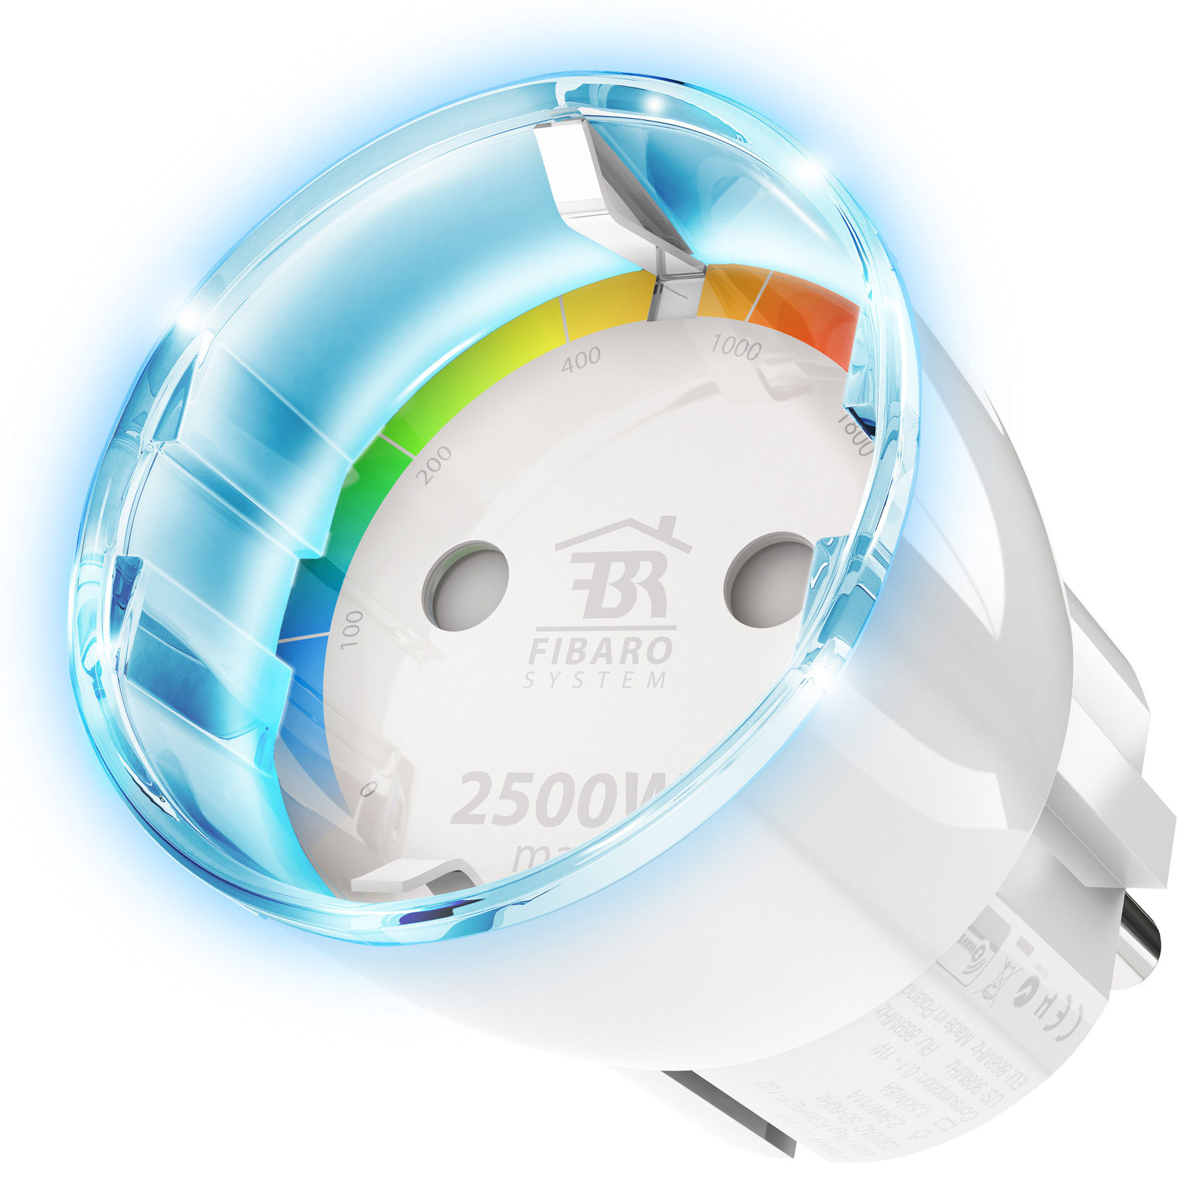 Fibaro WALL PLUG TYPE F FGWPF-102 ZW5, White устройство умного дома family wall quote removable wall stickers home decal art mural